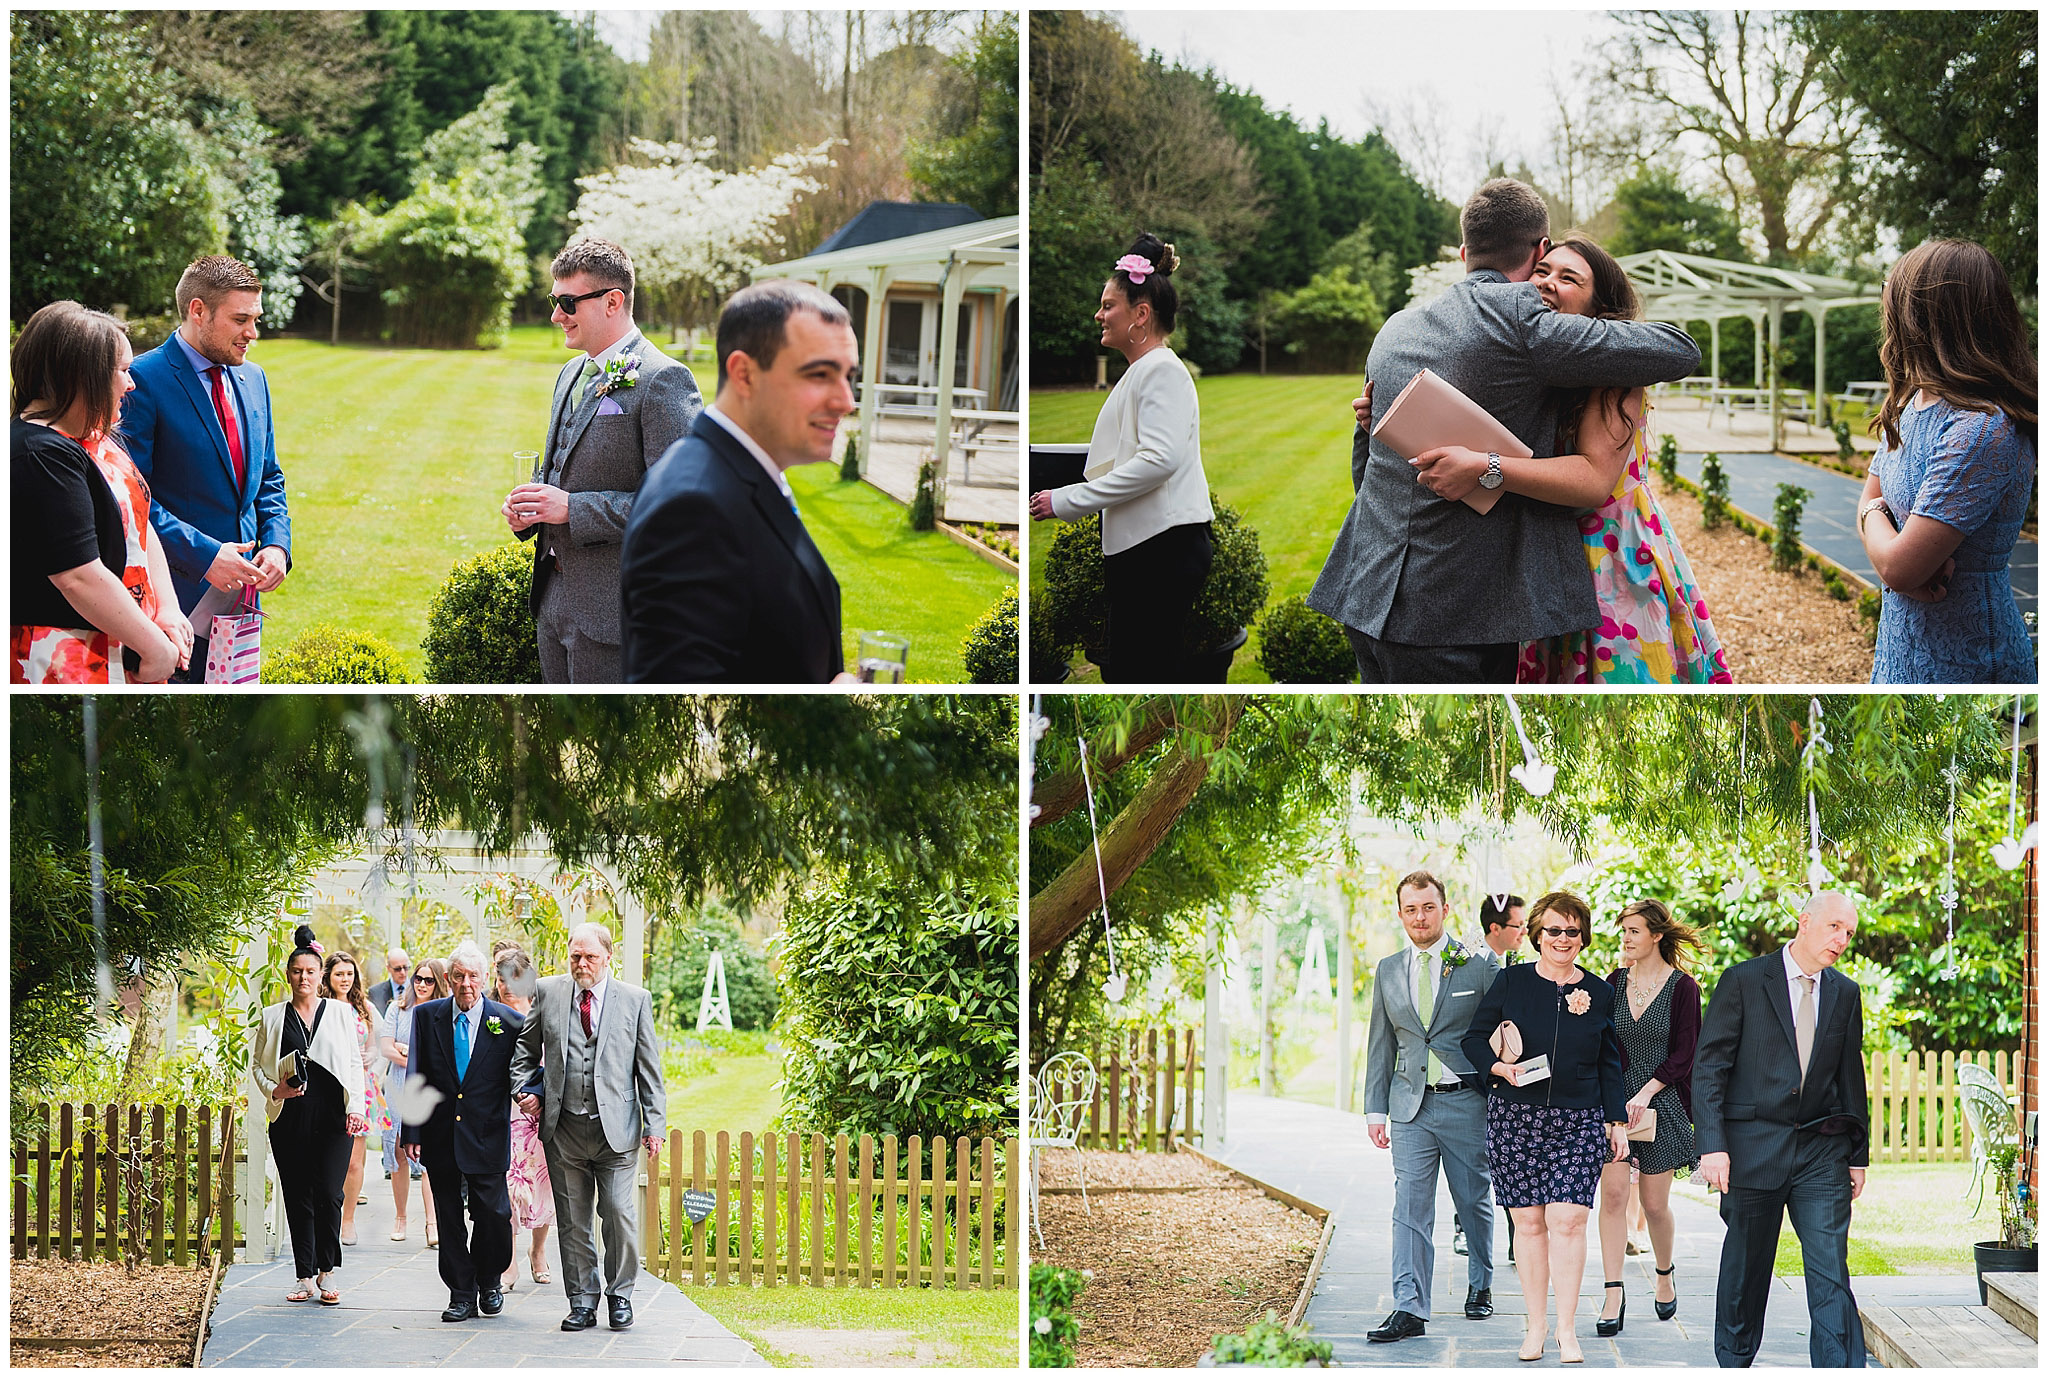 Sarah-&-Dan-The-Old-Vicarage-Wedding-Venue-Dorset-Photographer-4